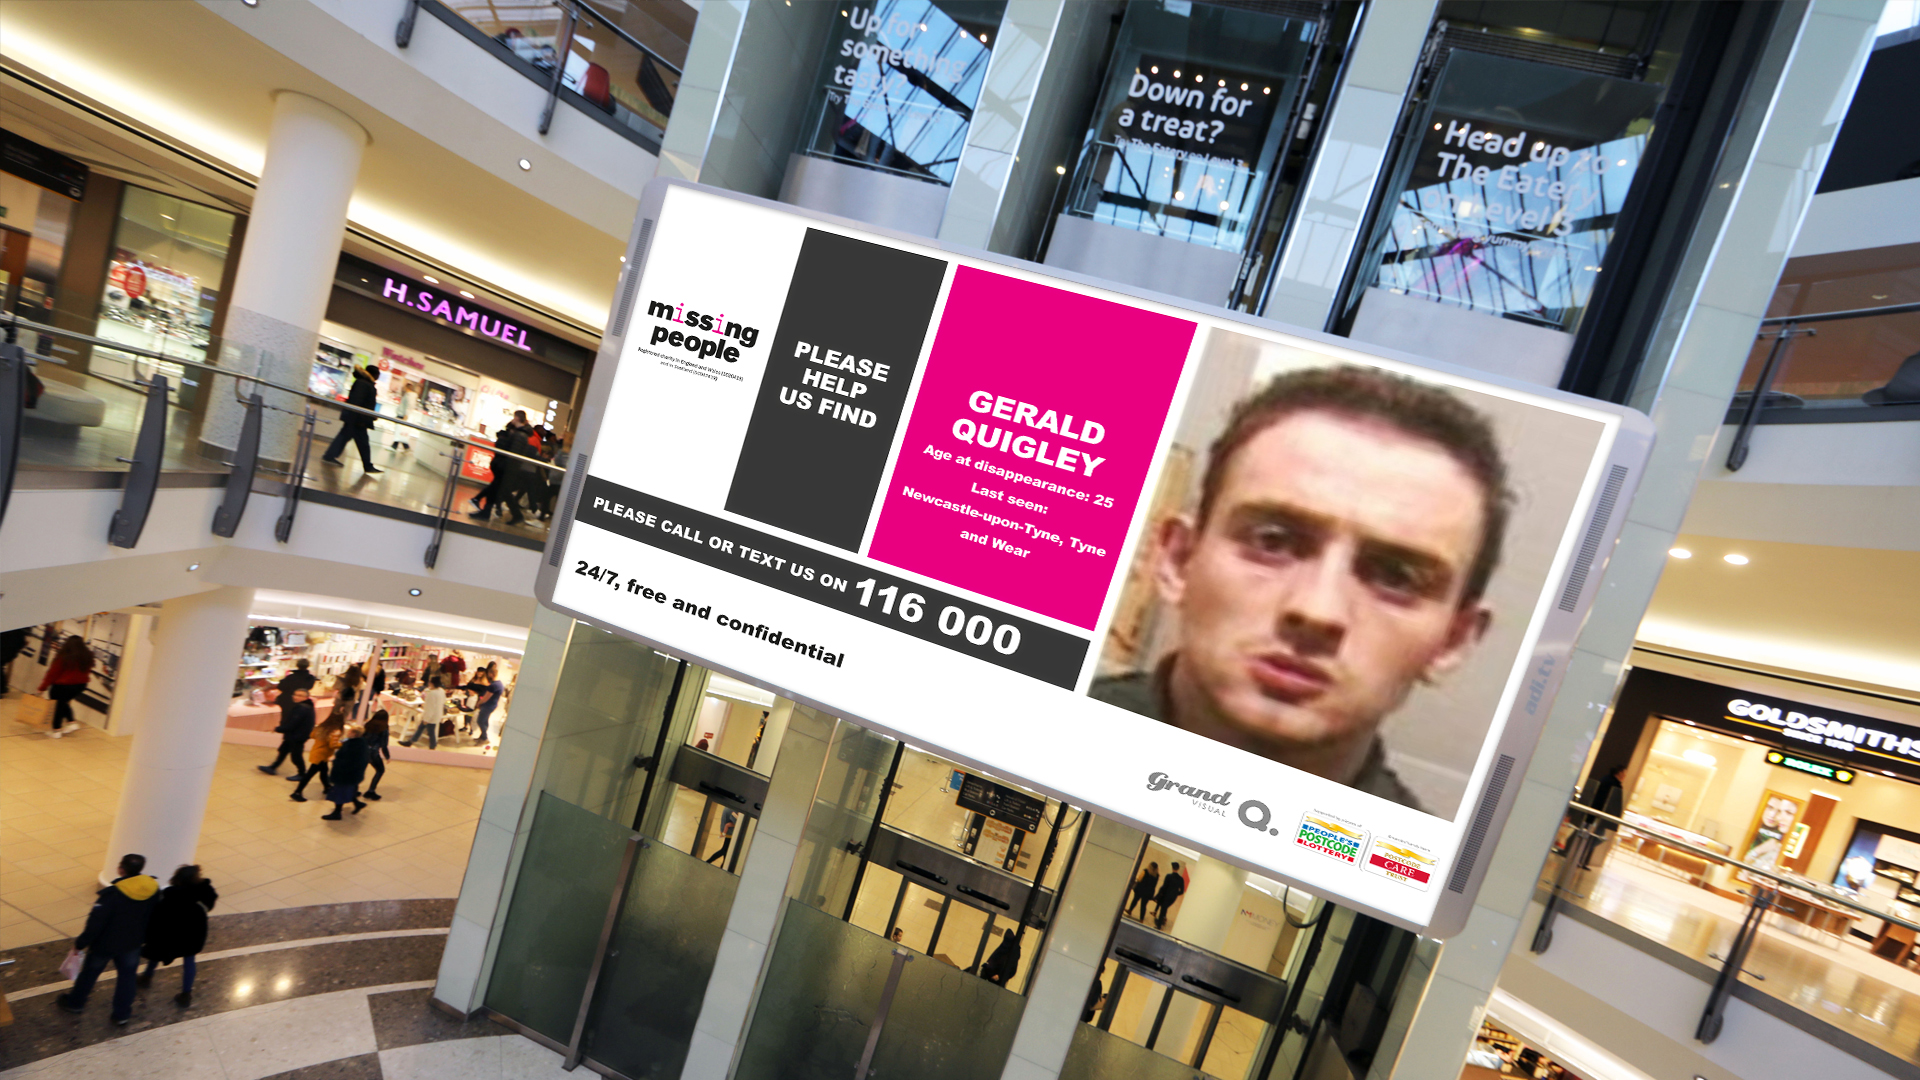 How Missing People is using digital outdoor advertising